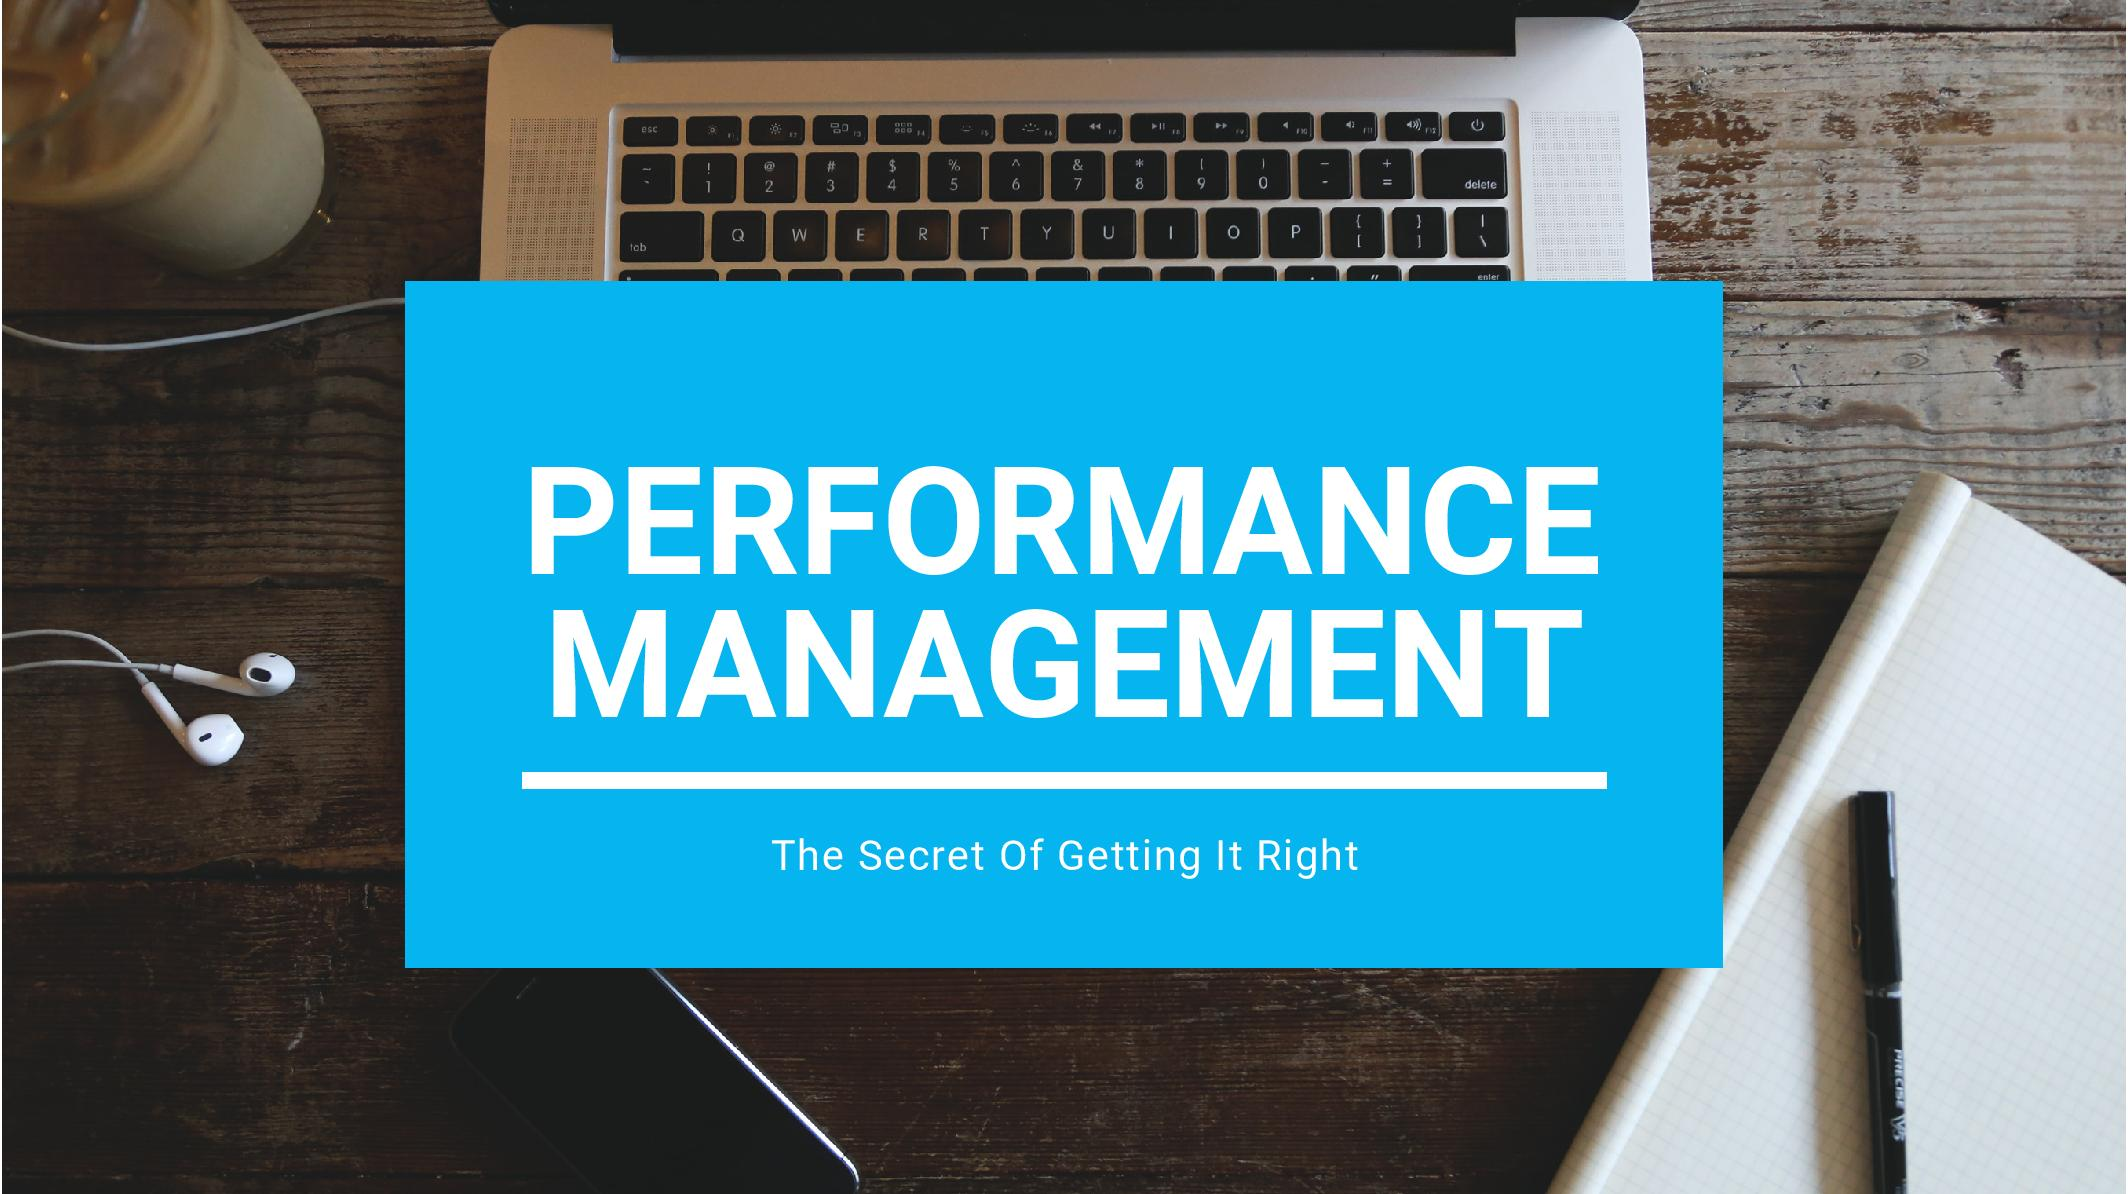 Performance Management: The Secret Of Getting It Right